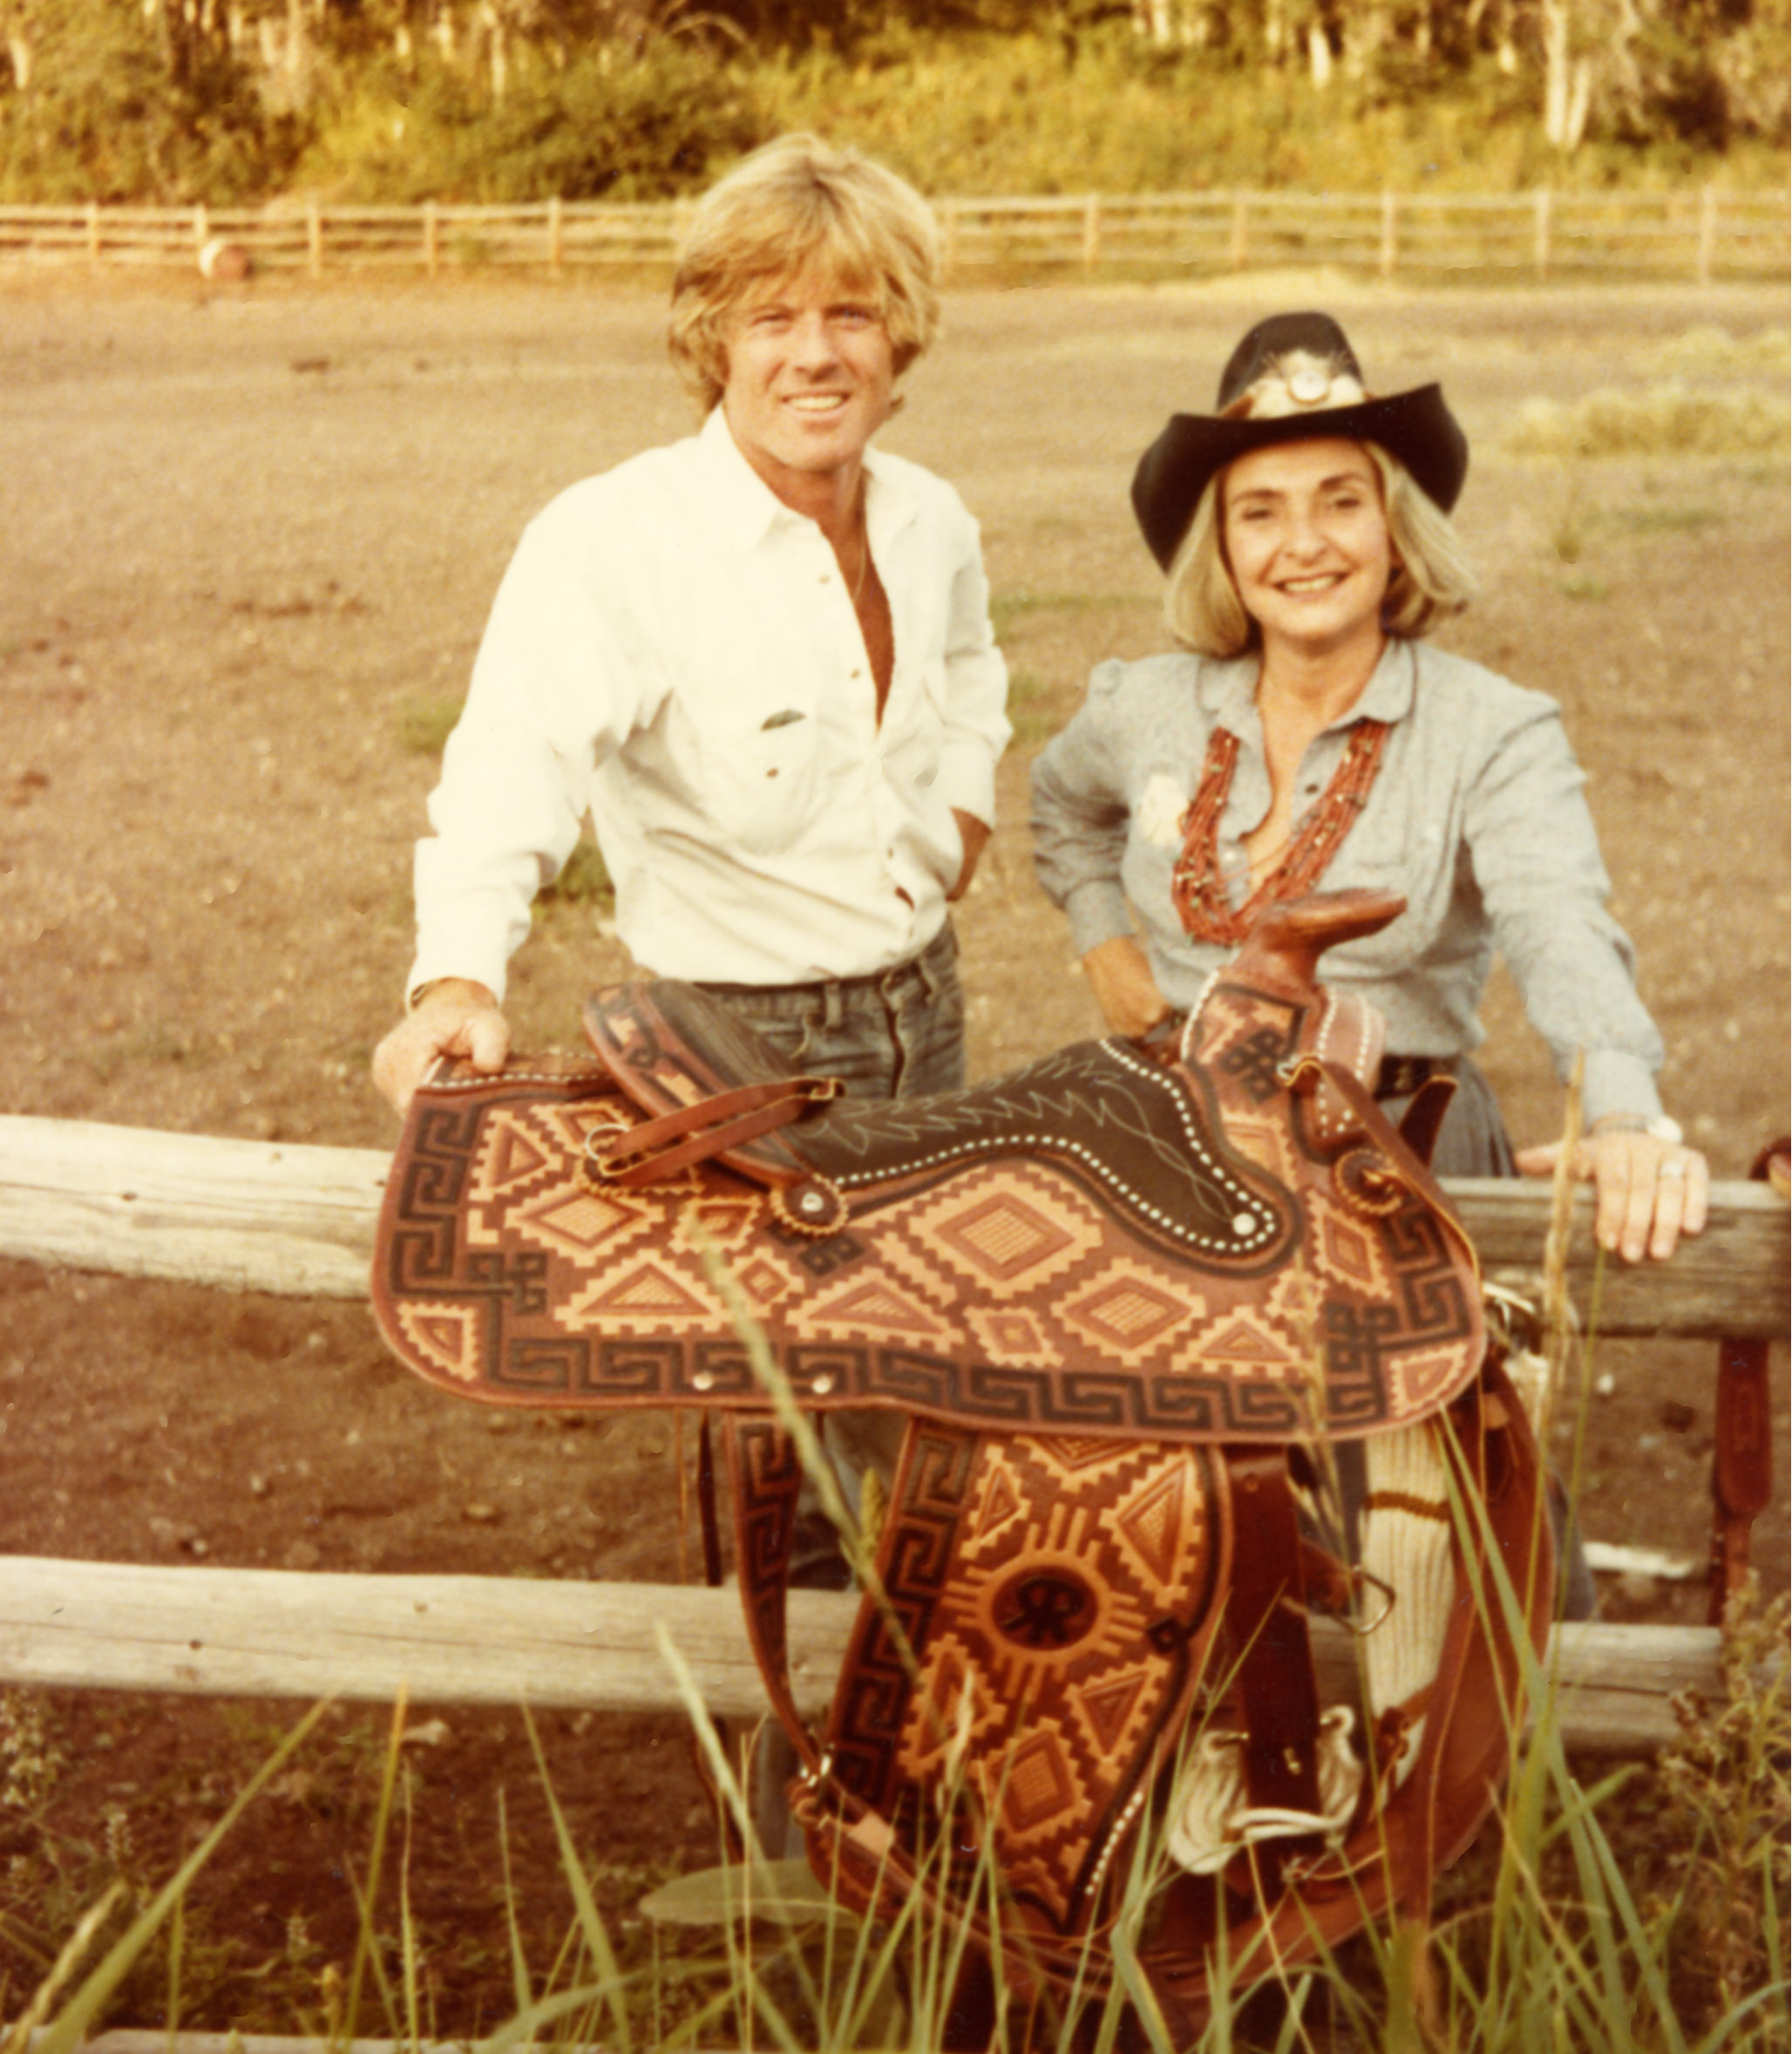 elaine horwitch with robert redford unsized image